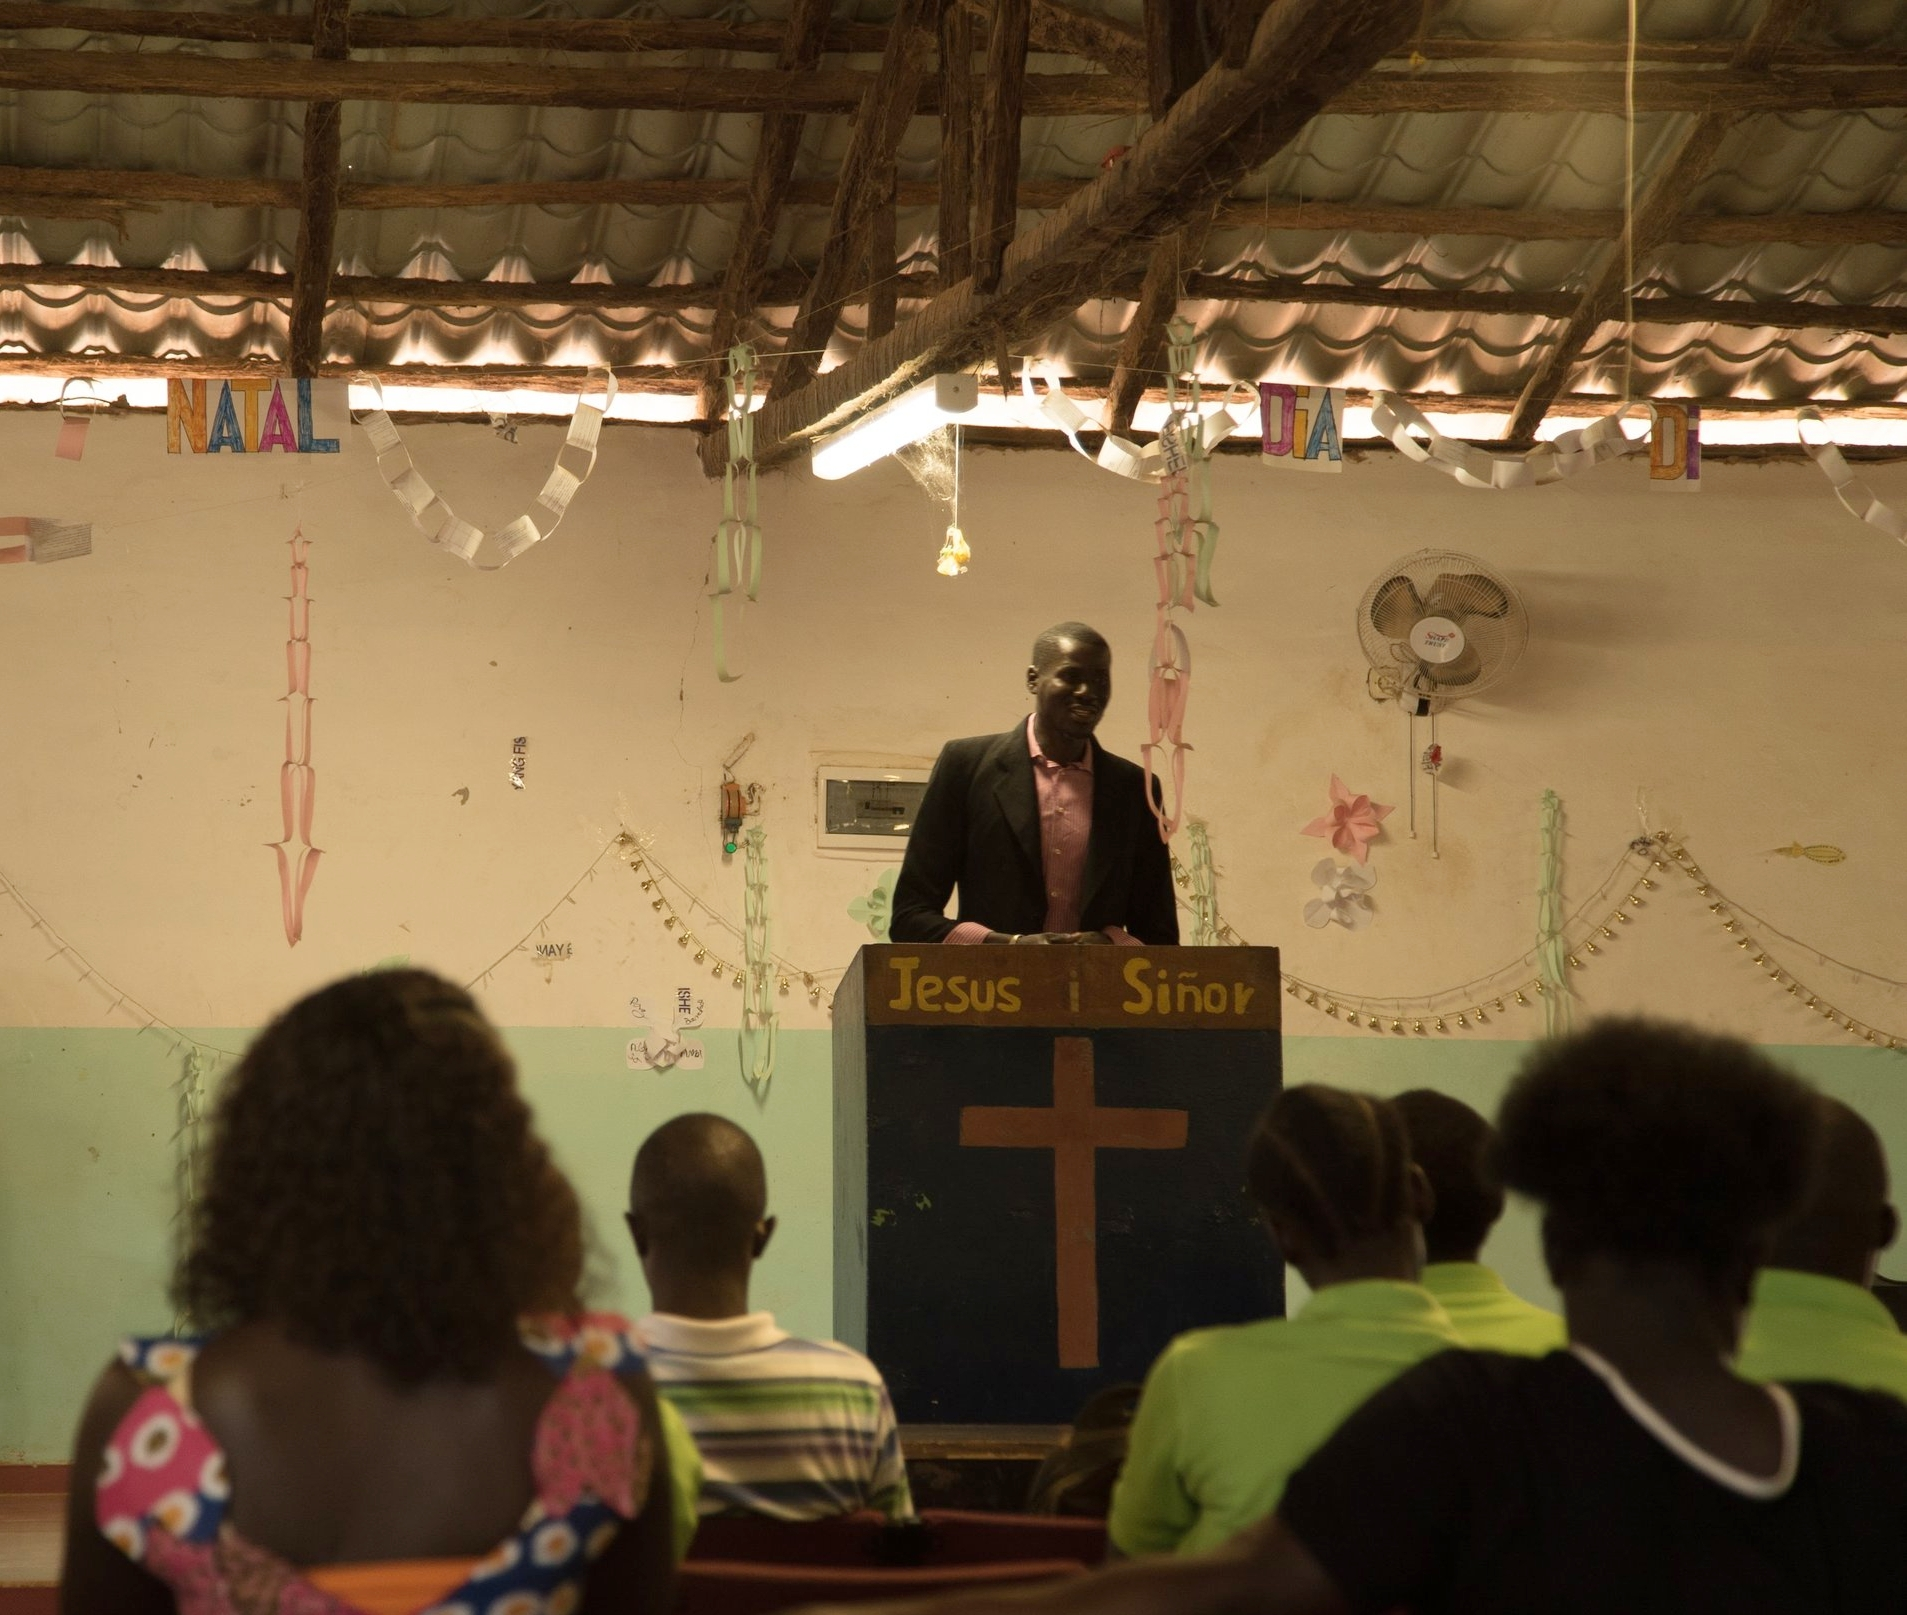 Christians in Guinea-Bissau are the minority, but local churches in West Africa are committed to spreading the Gospel to people